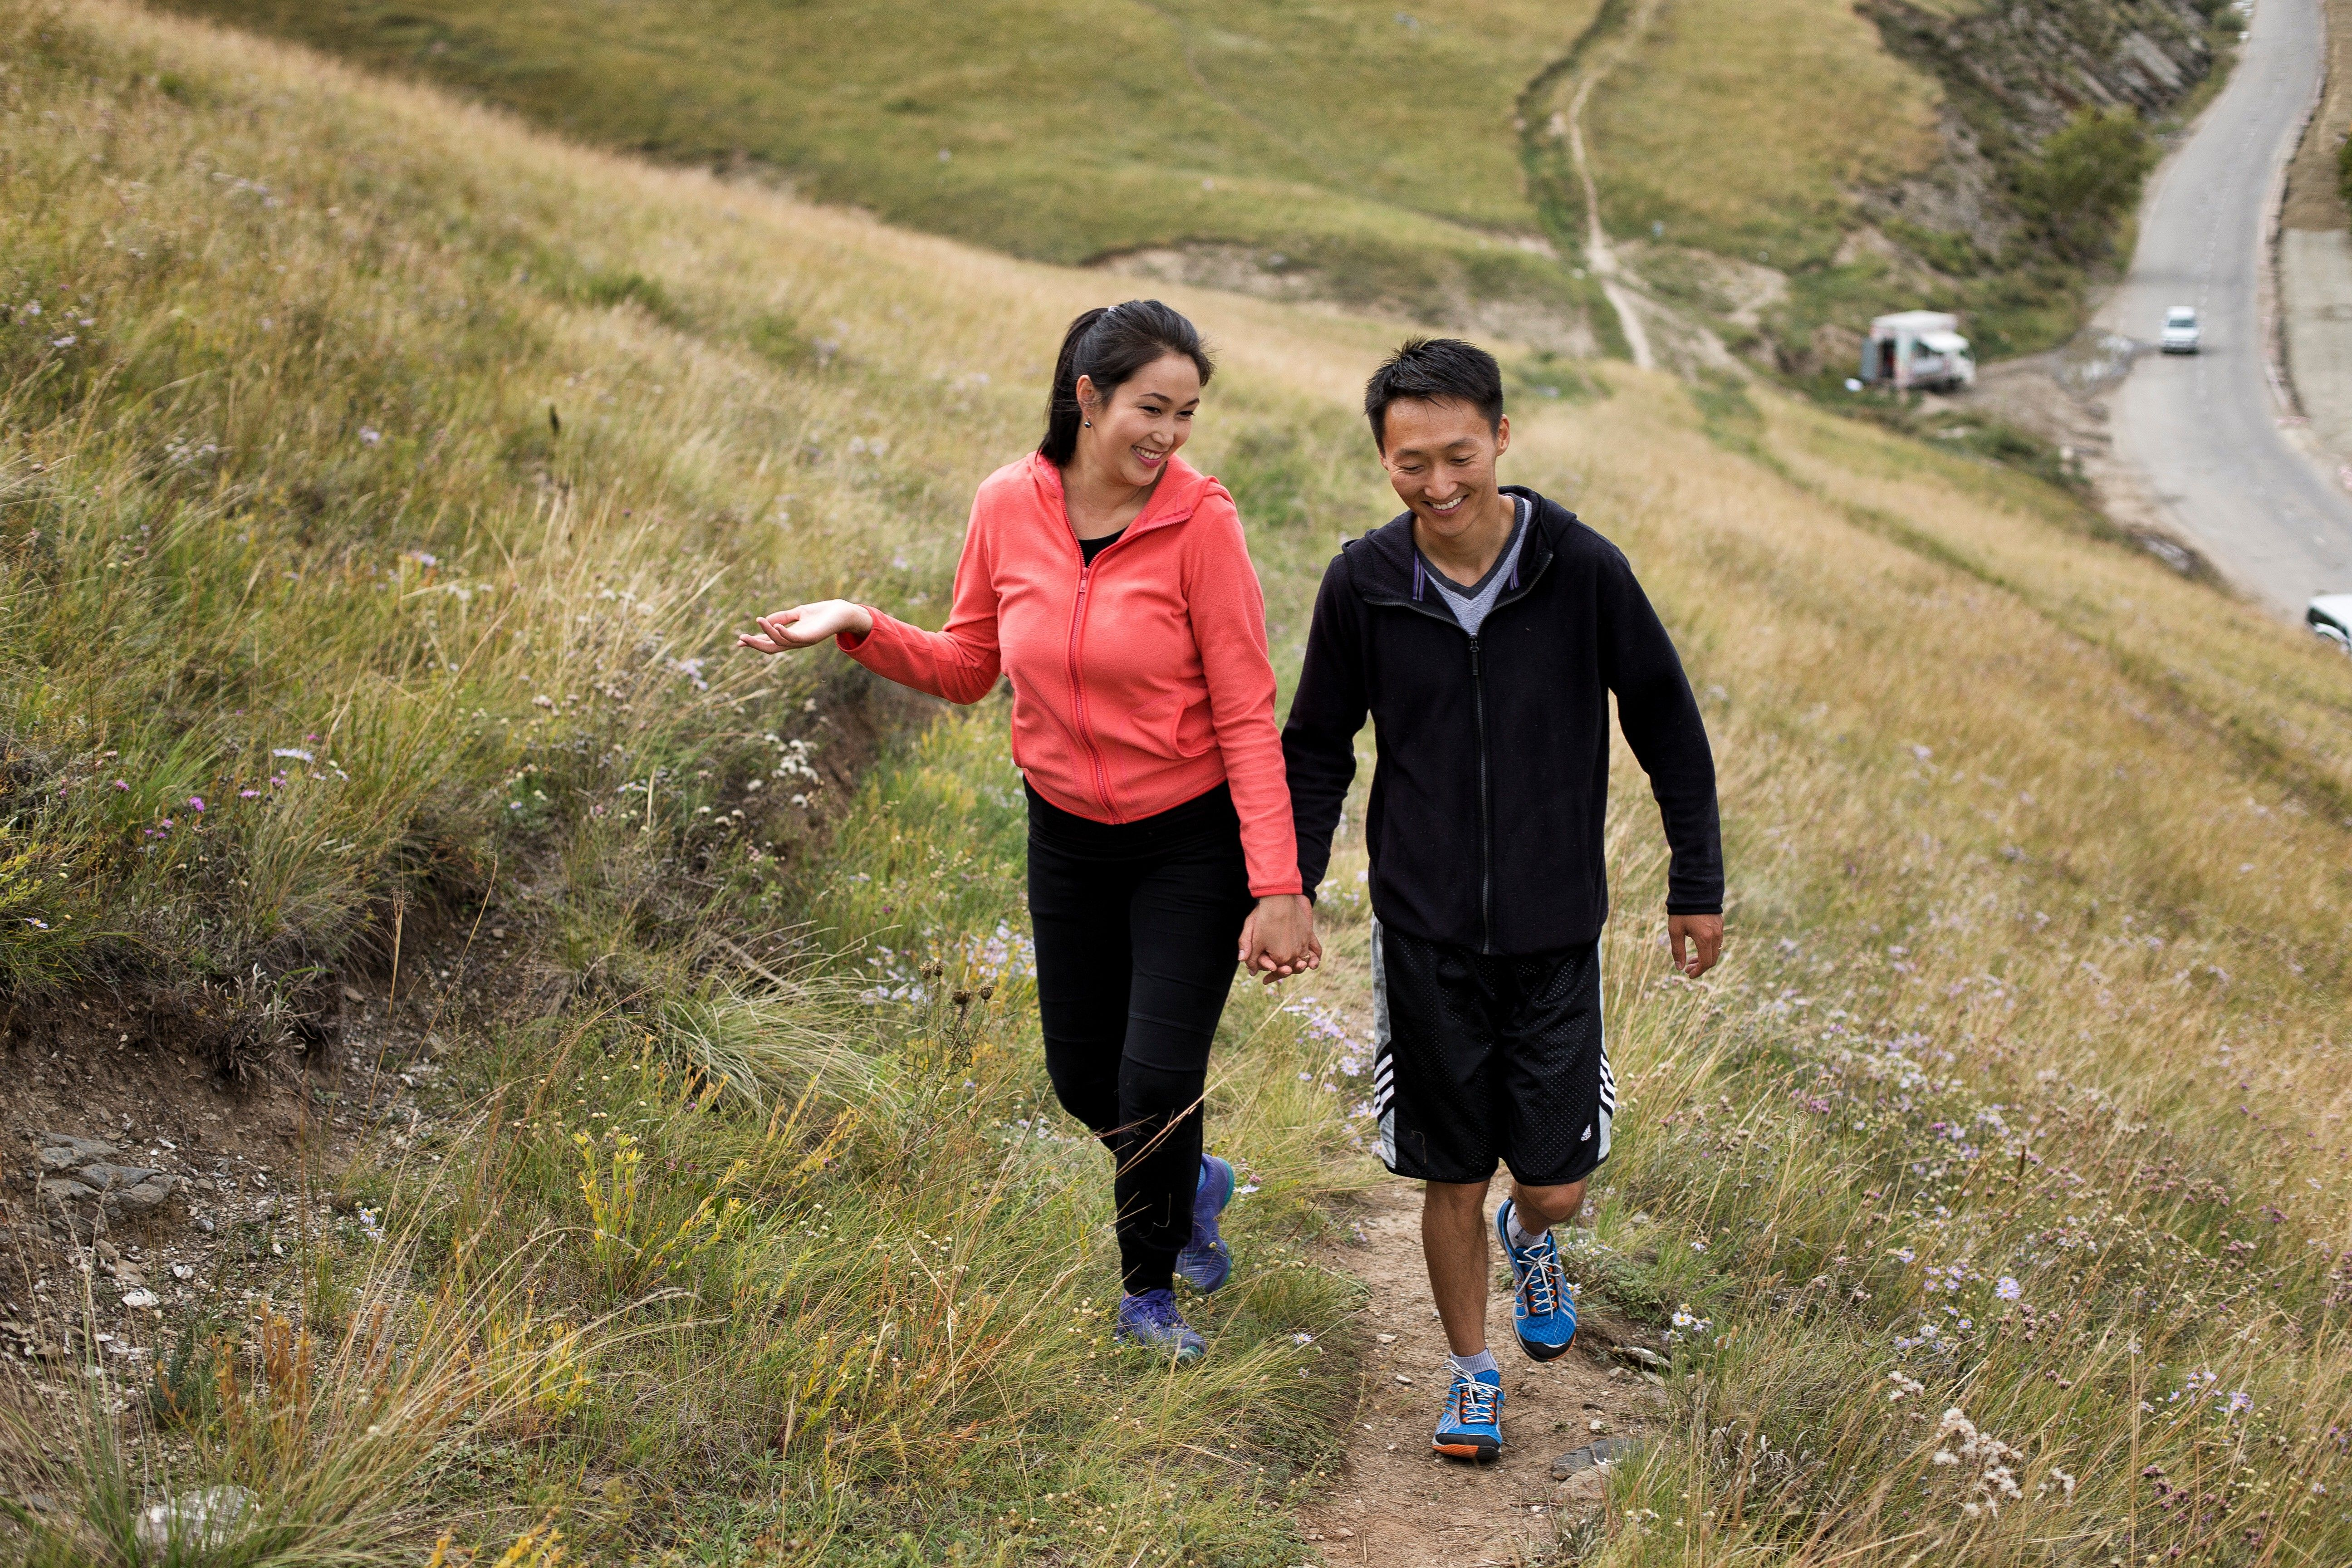 A couple from Mongolia holding hands while hiking up a hill together.